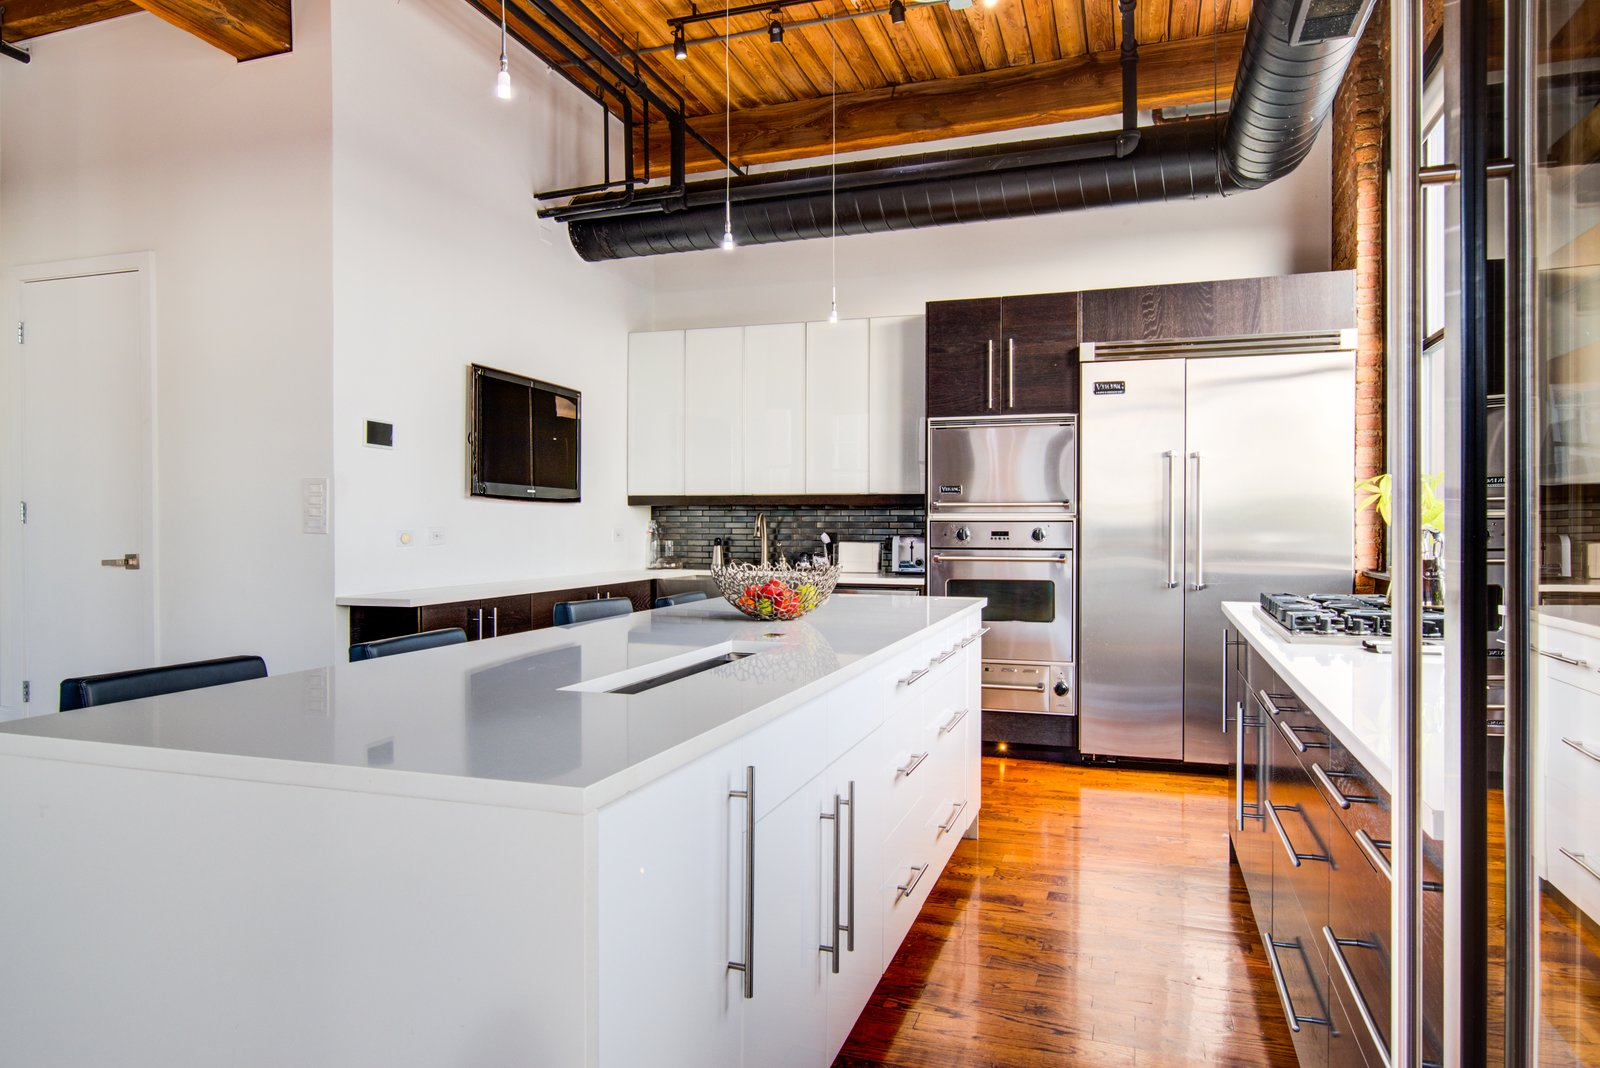 Kitchen, Refrigerator, Cooktops, Medium Hardwood Floor, White Cabinet, Quartzite Counter, Dishwasher, Wall Oven, Ceiling Lighting, Track Lighting, Microwave, and Wine Cooler  Penthouse That Starred on NBC's 'Chicago Fire' Asks $1.775M